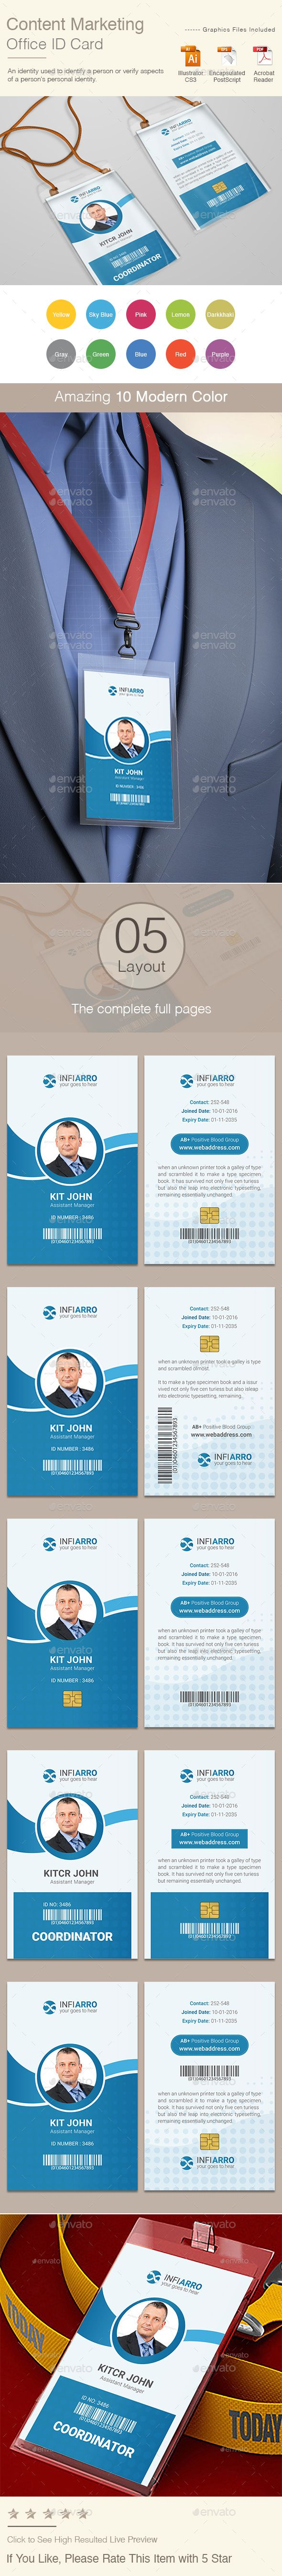 Content Marketing Office ID Card | Pinterest | Tarjetas de ...